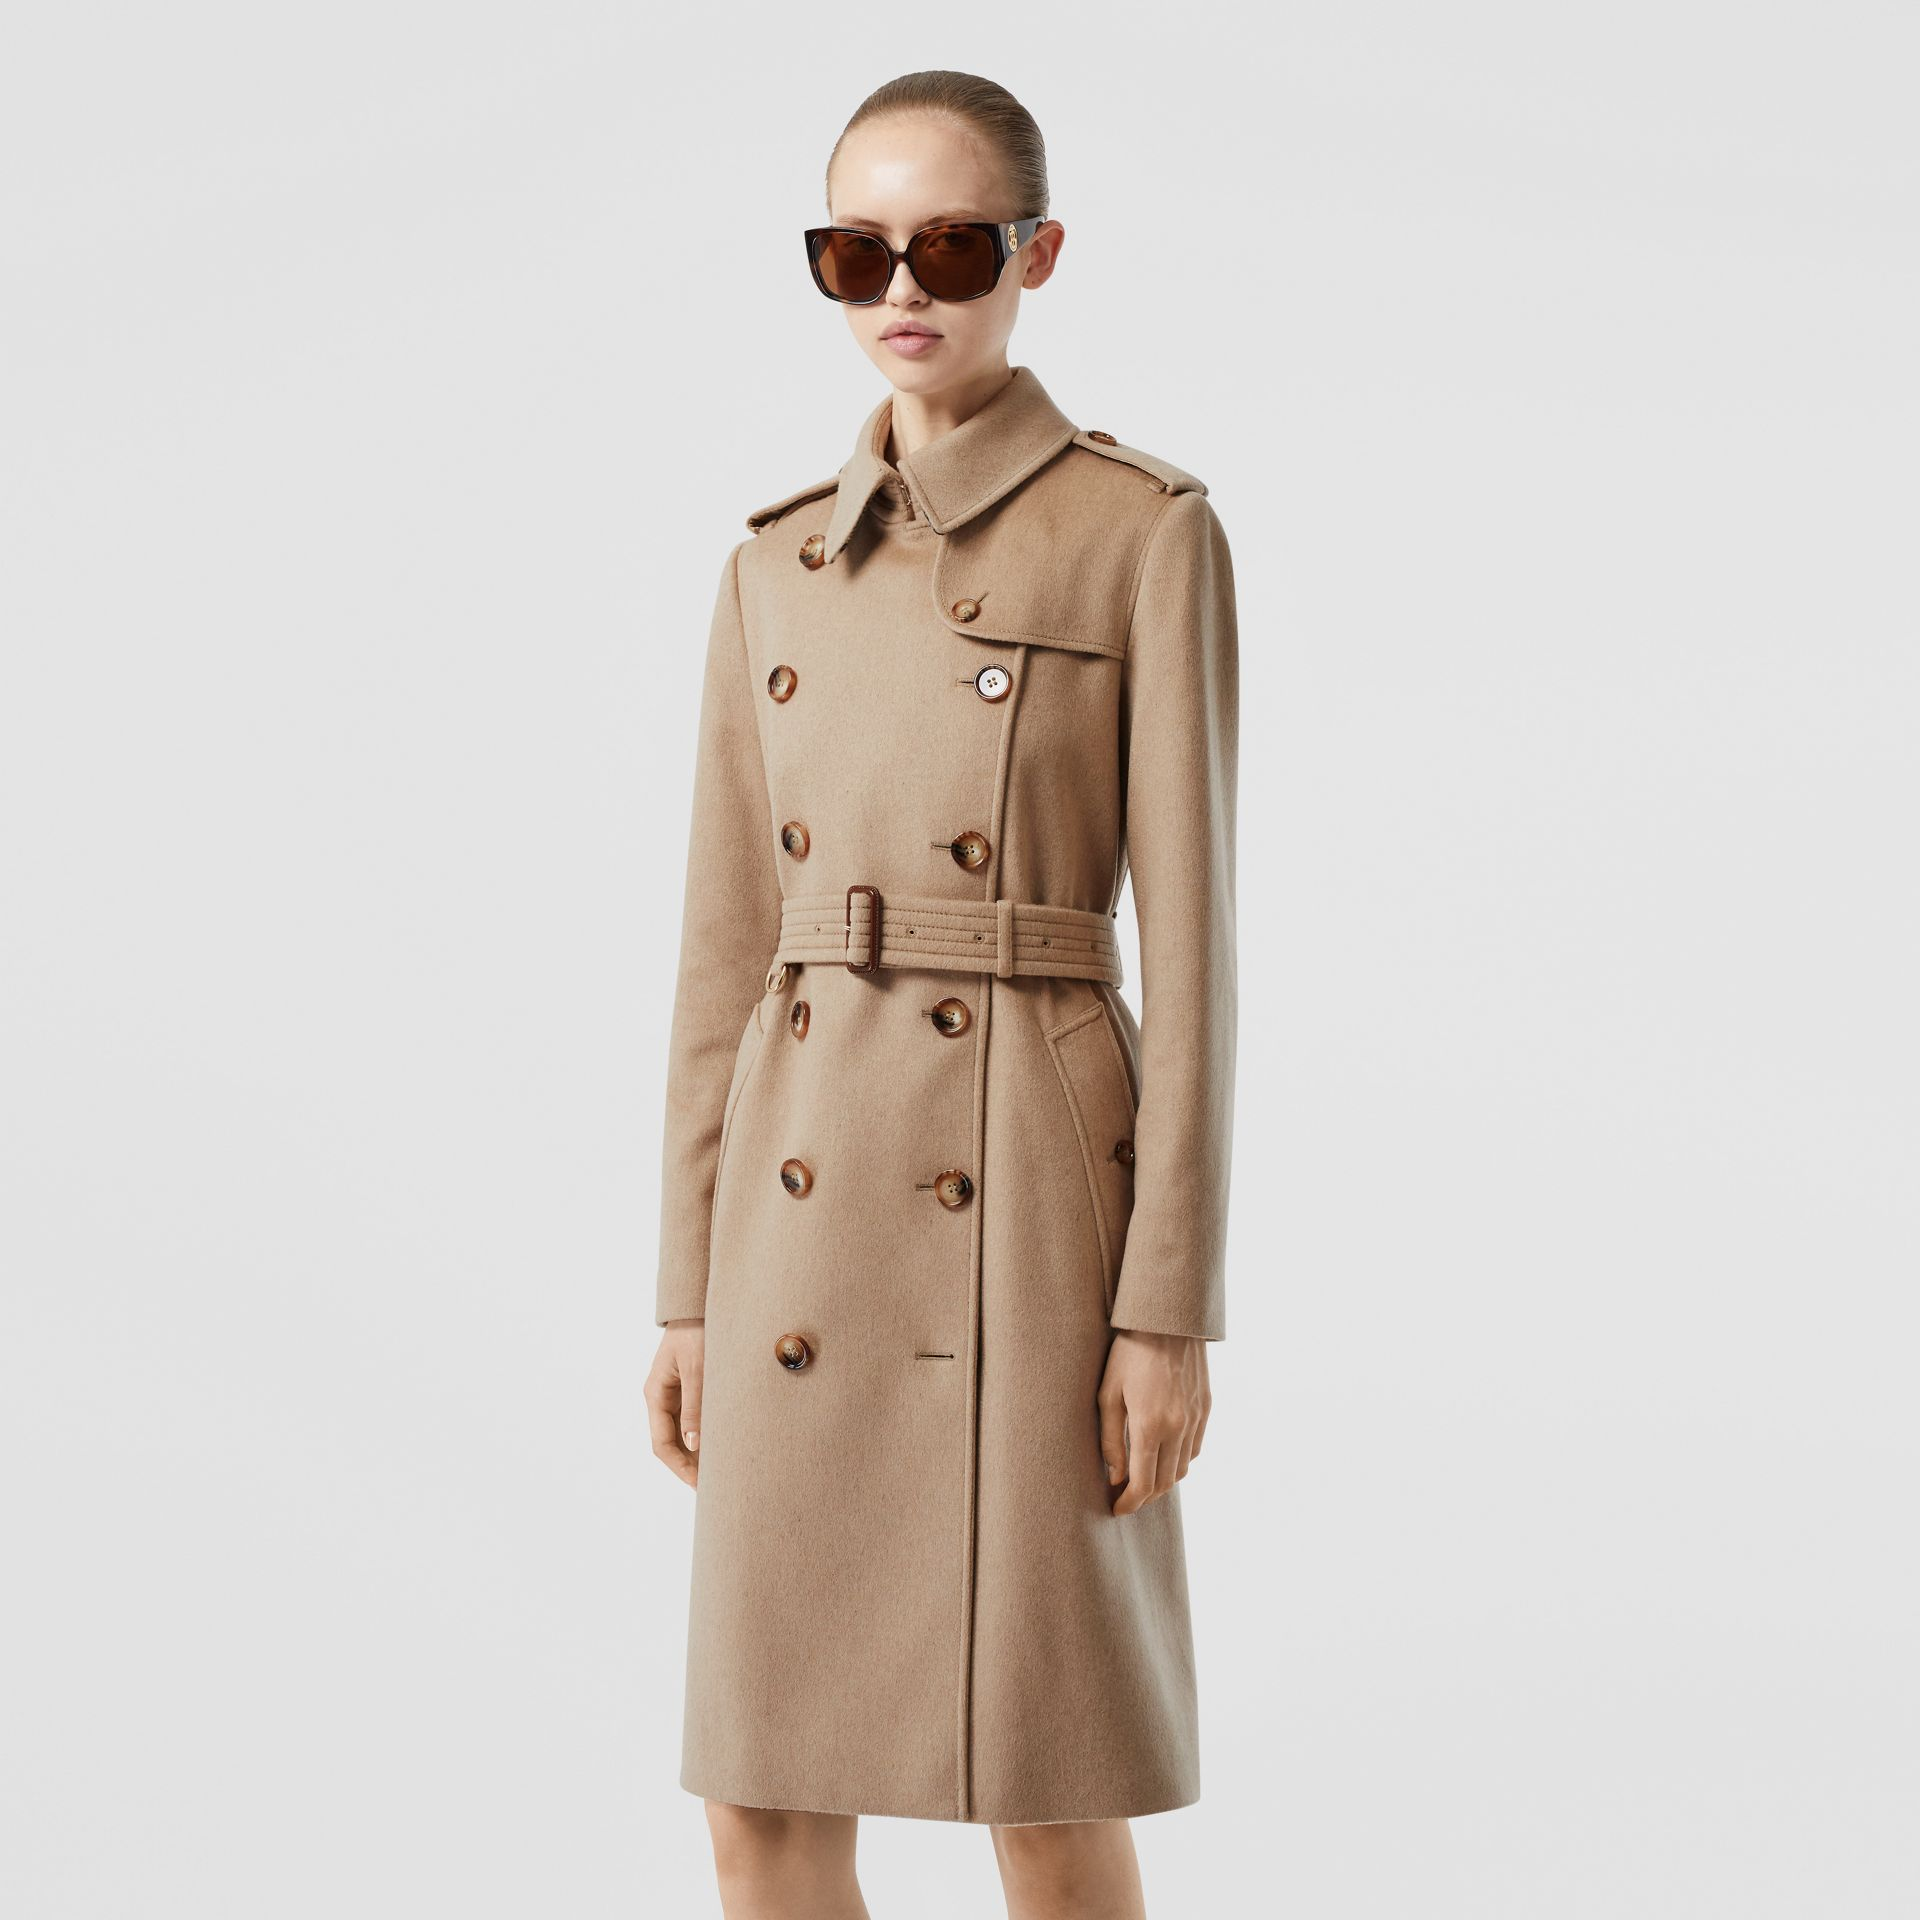 Cashmere Trench Coat in Camel - Women | Burberry Hong Kong S.A.R - gallery image 6